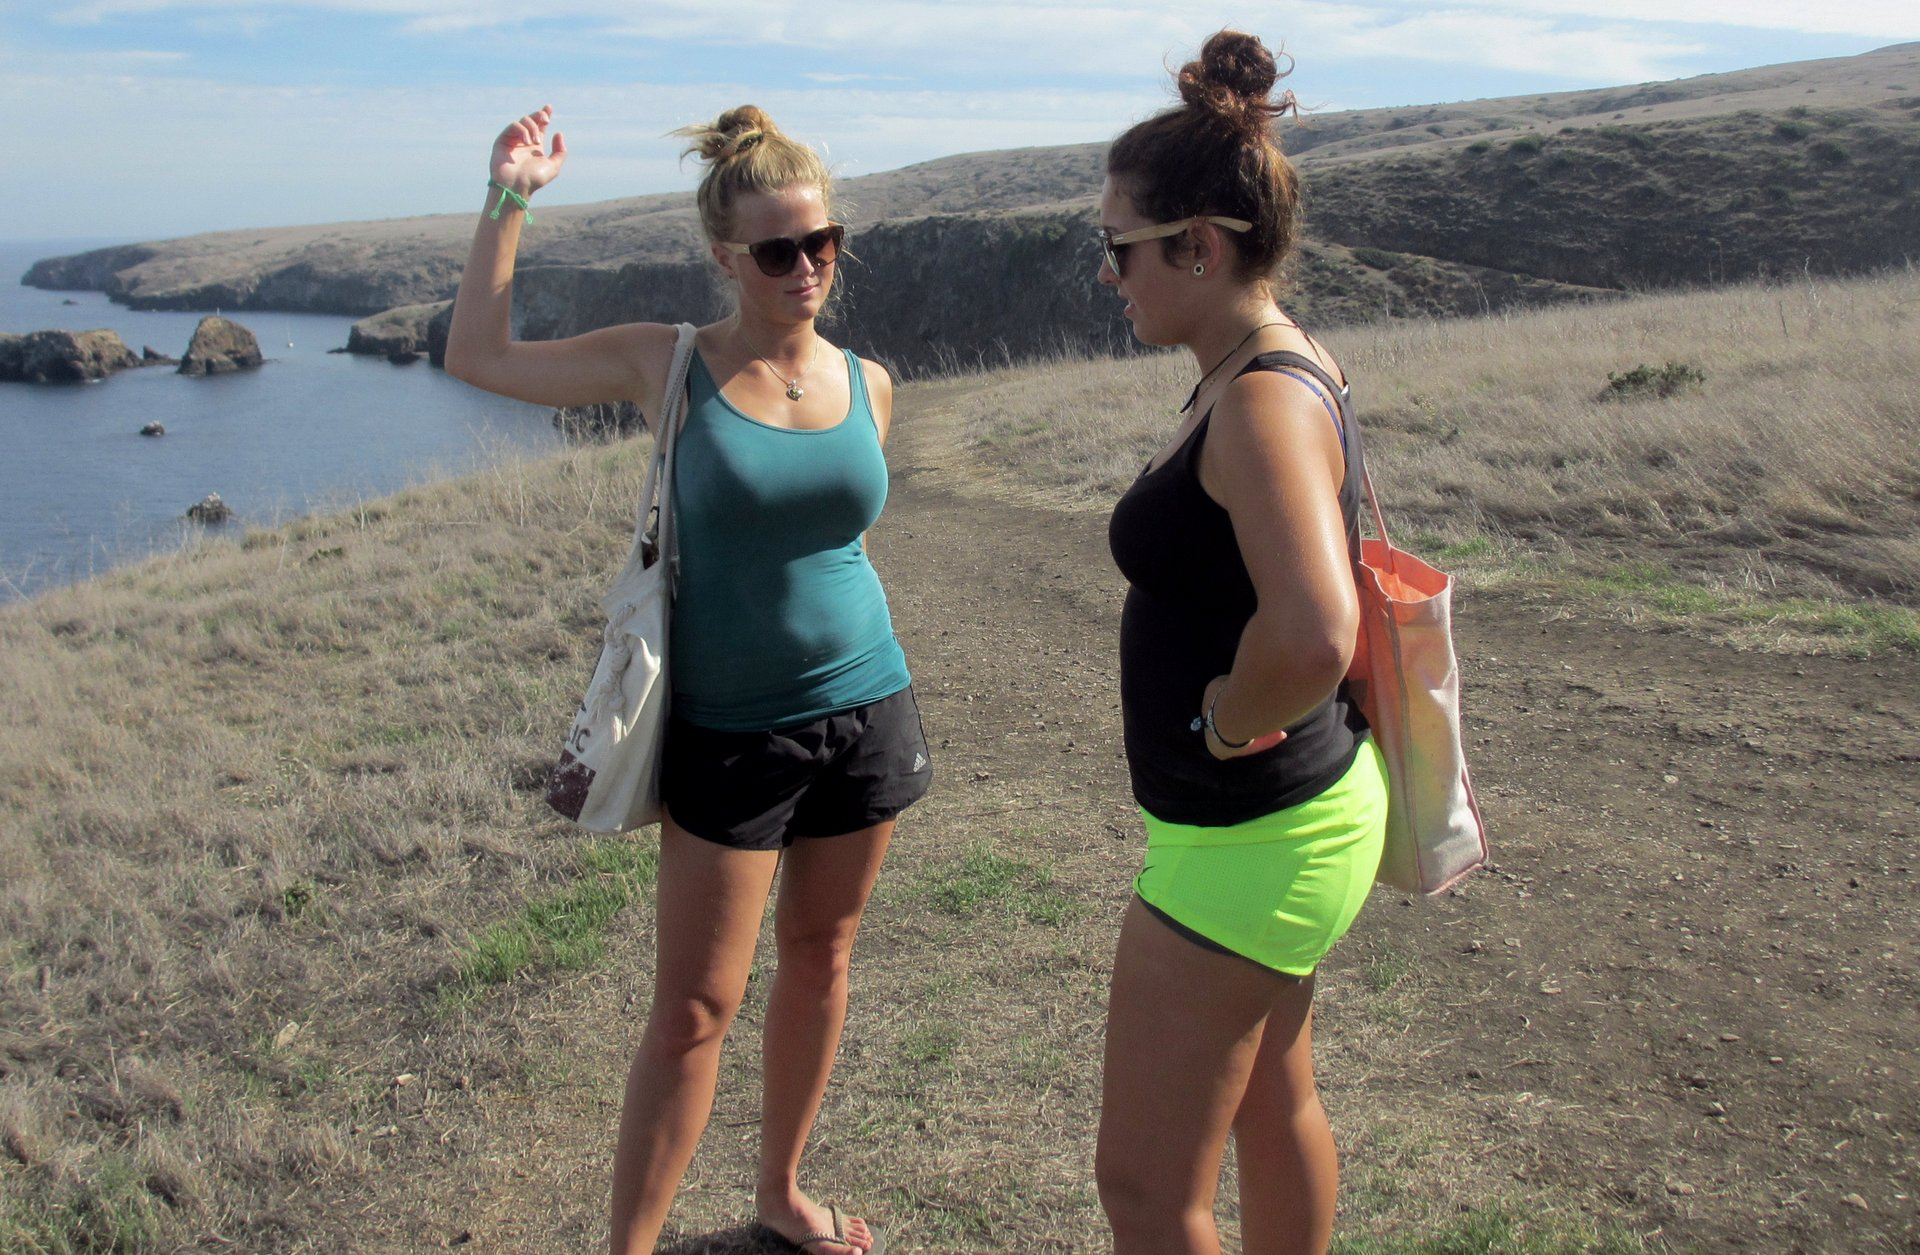 Stefanie Kuisle & Zeinab Greif hiking on Santa Cruz Island